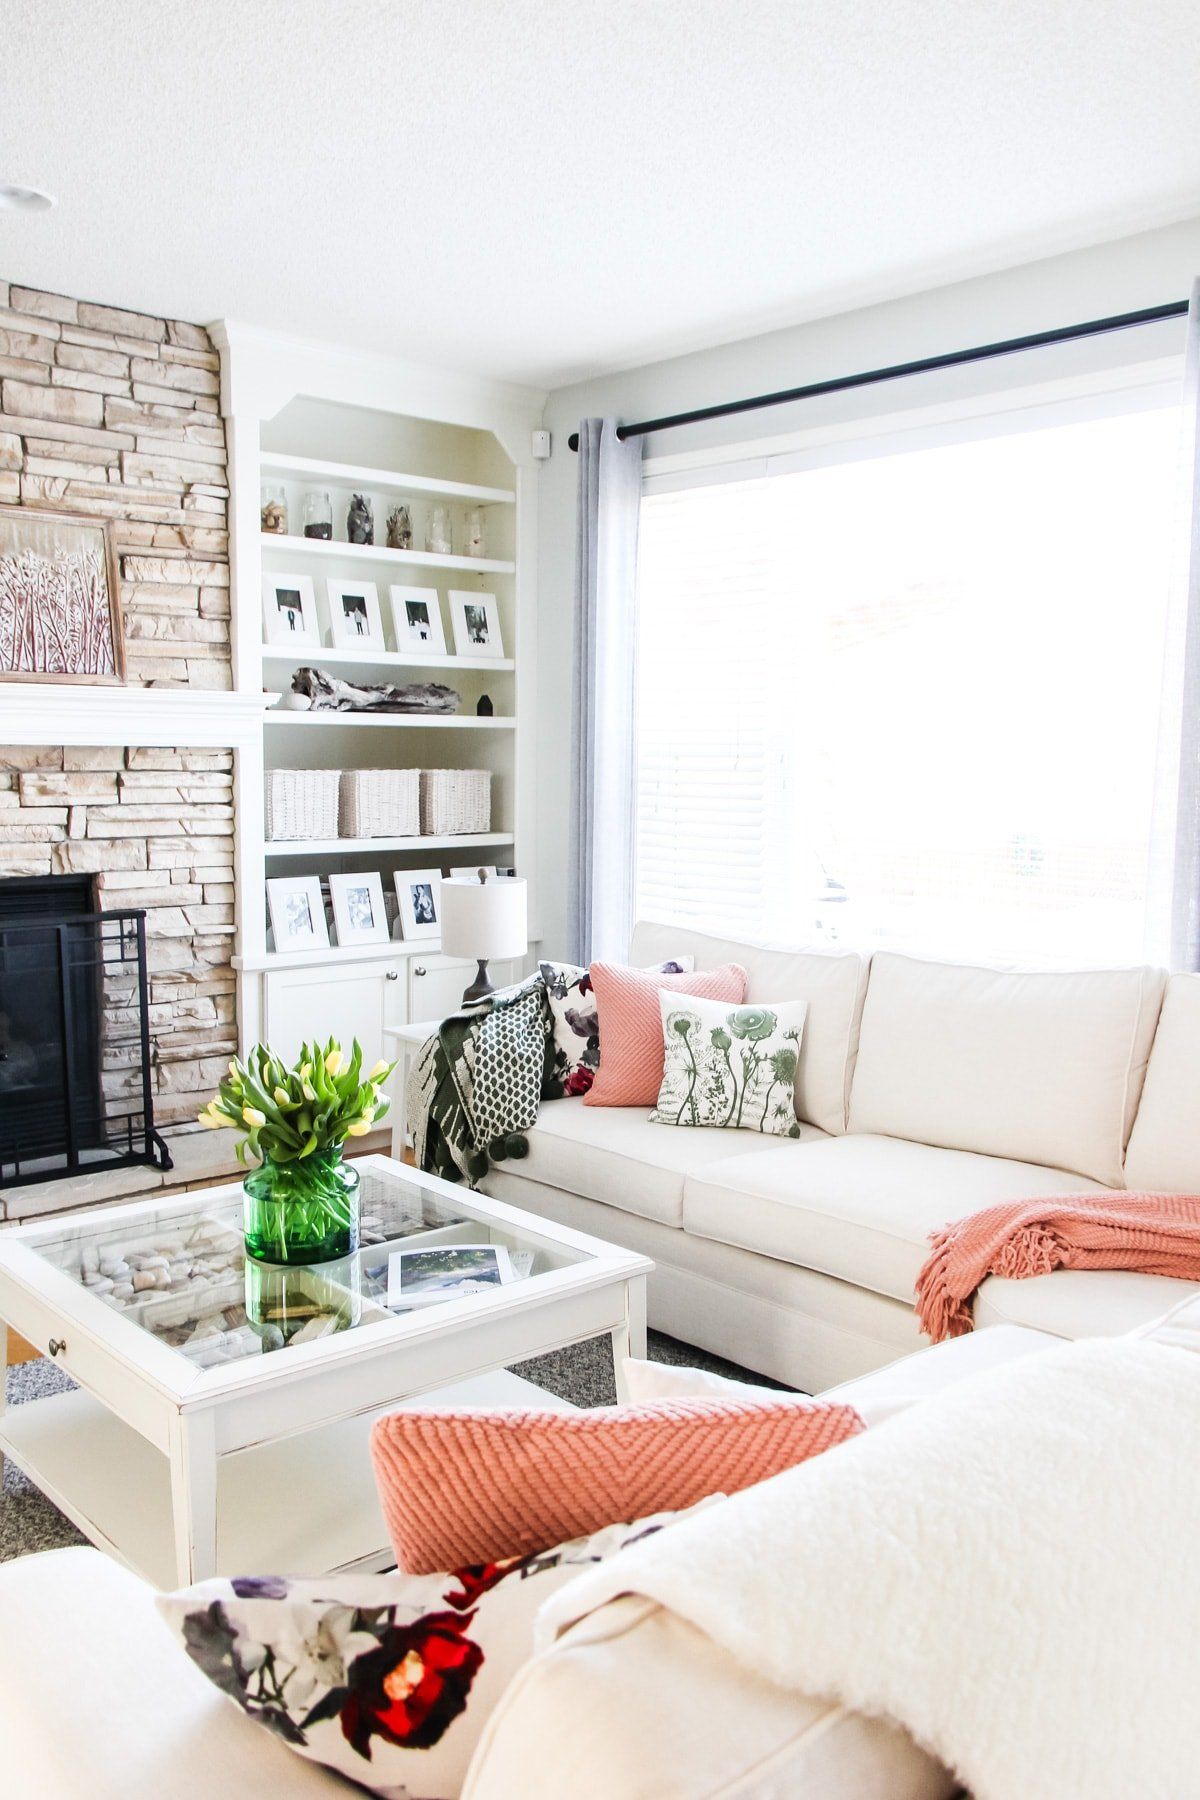 a picture of a white sectional couch in a living room with throw pillows and blankets. on a coffee table is a bouquet of tulips. in the background is a stone fireplace and white bookcase shelving